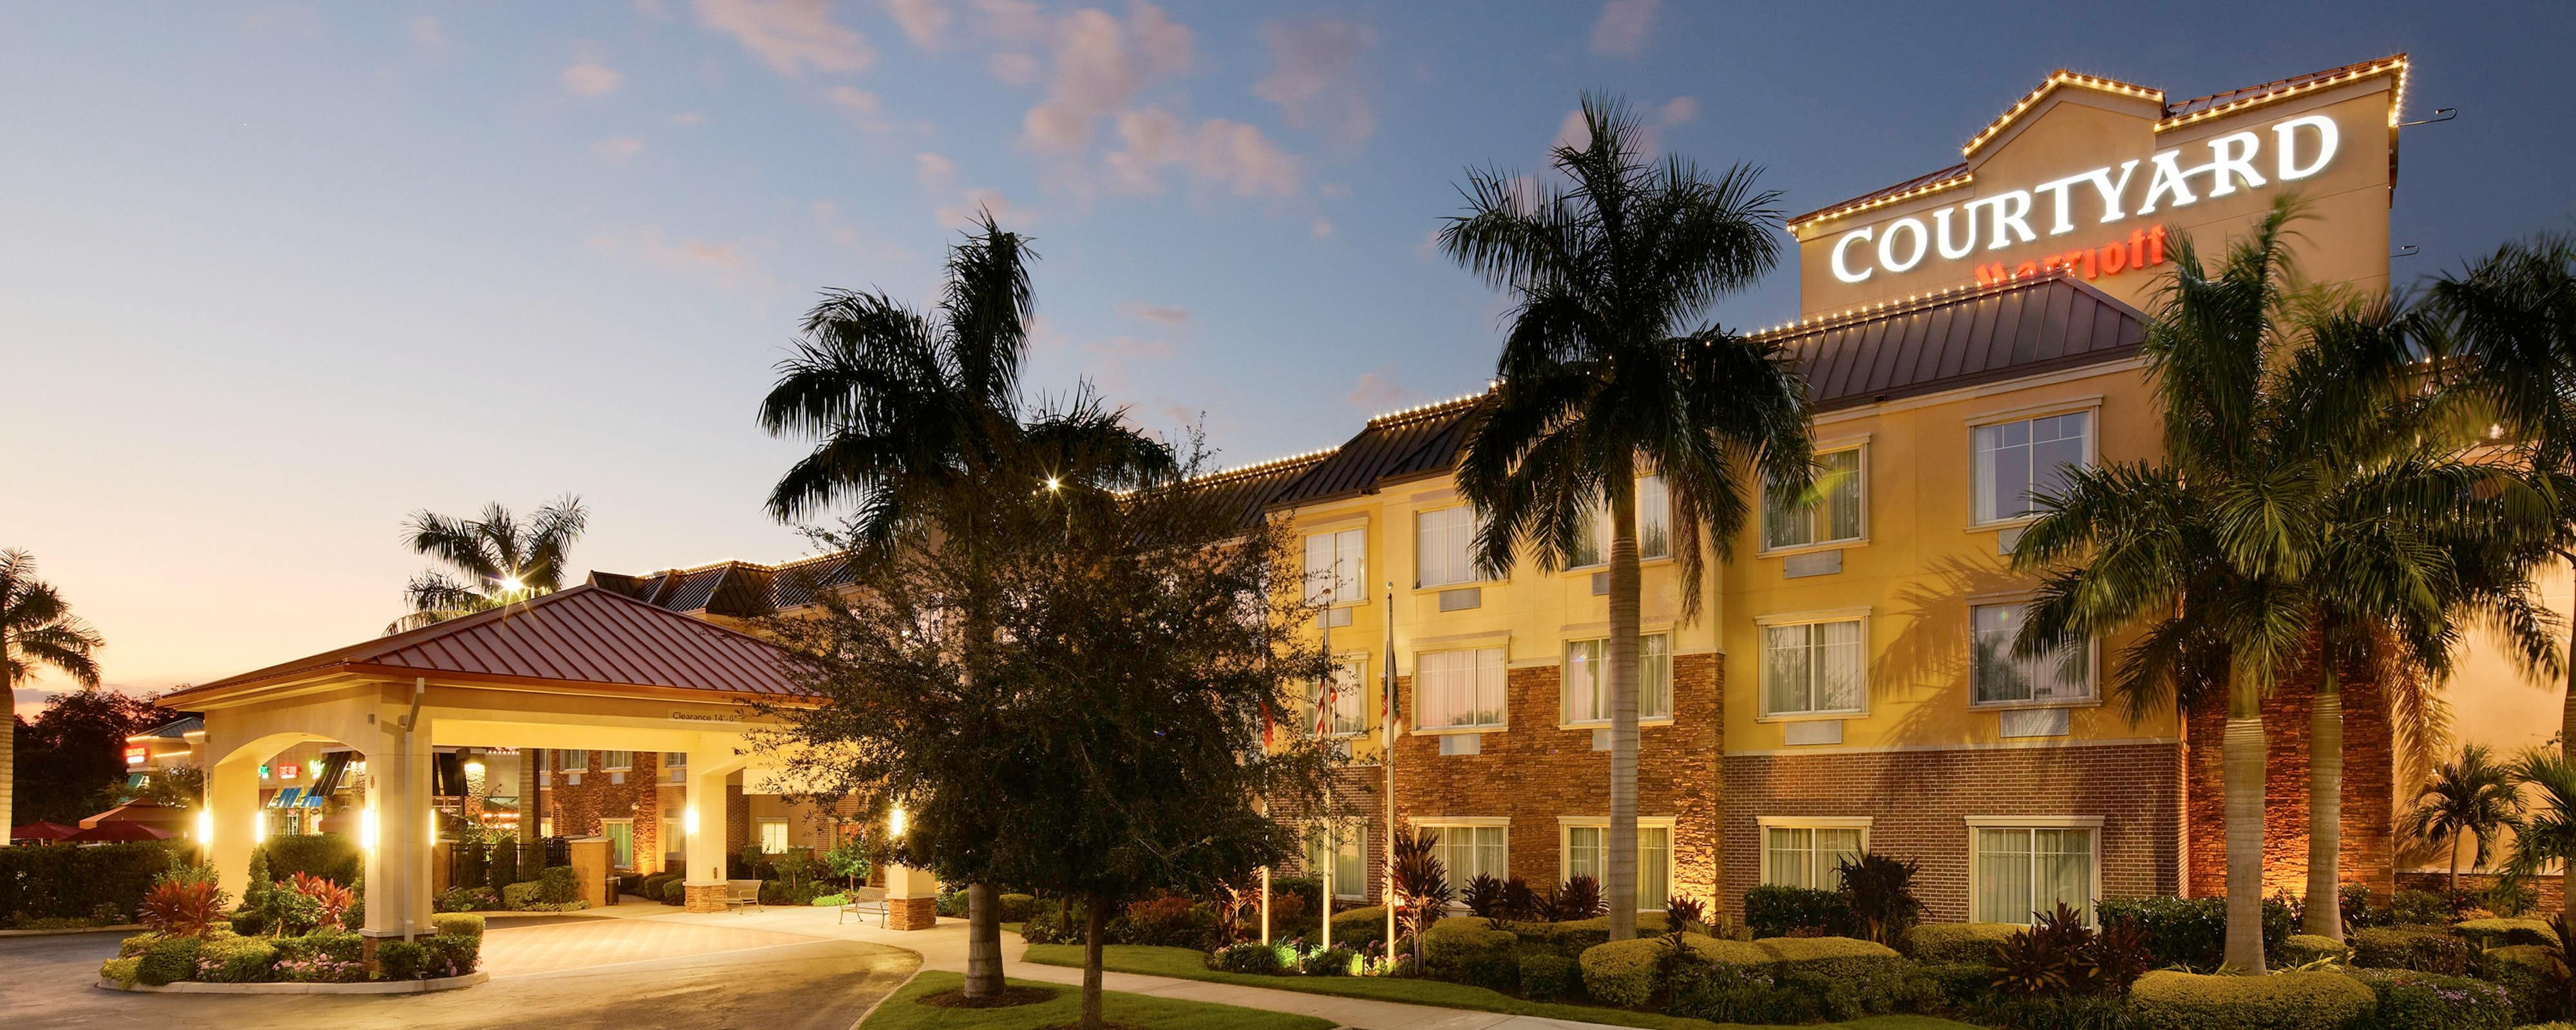 Hotels near Sarasota, FL | Courtyard Lakewood Ranch Hotel near Sarasota